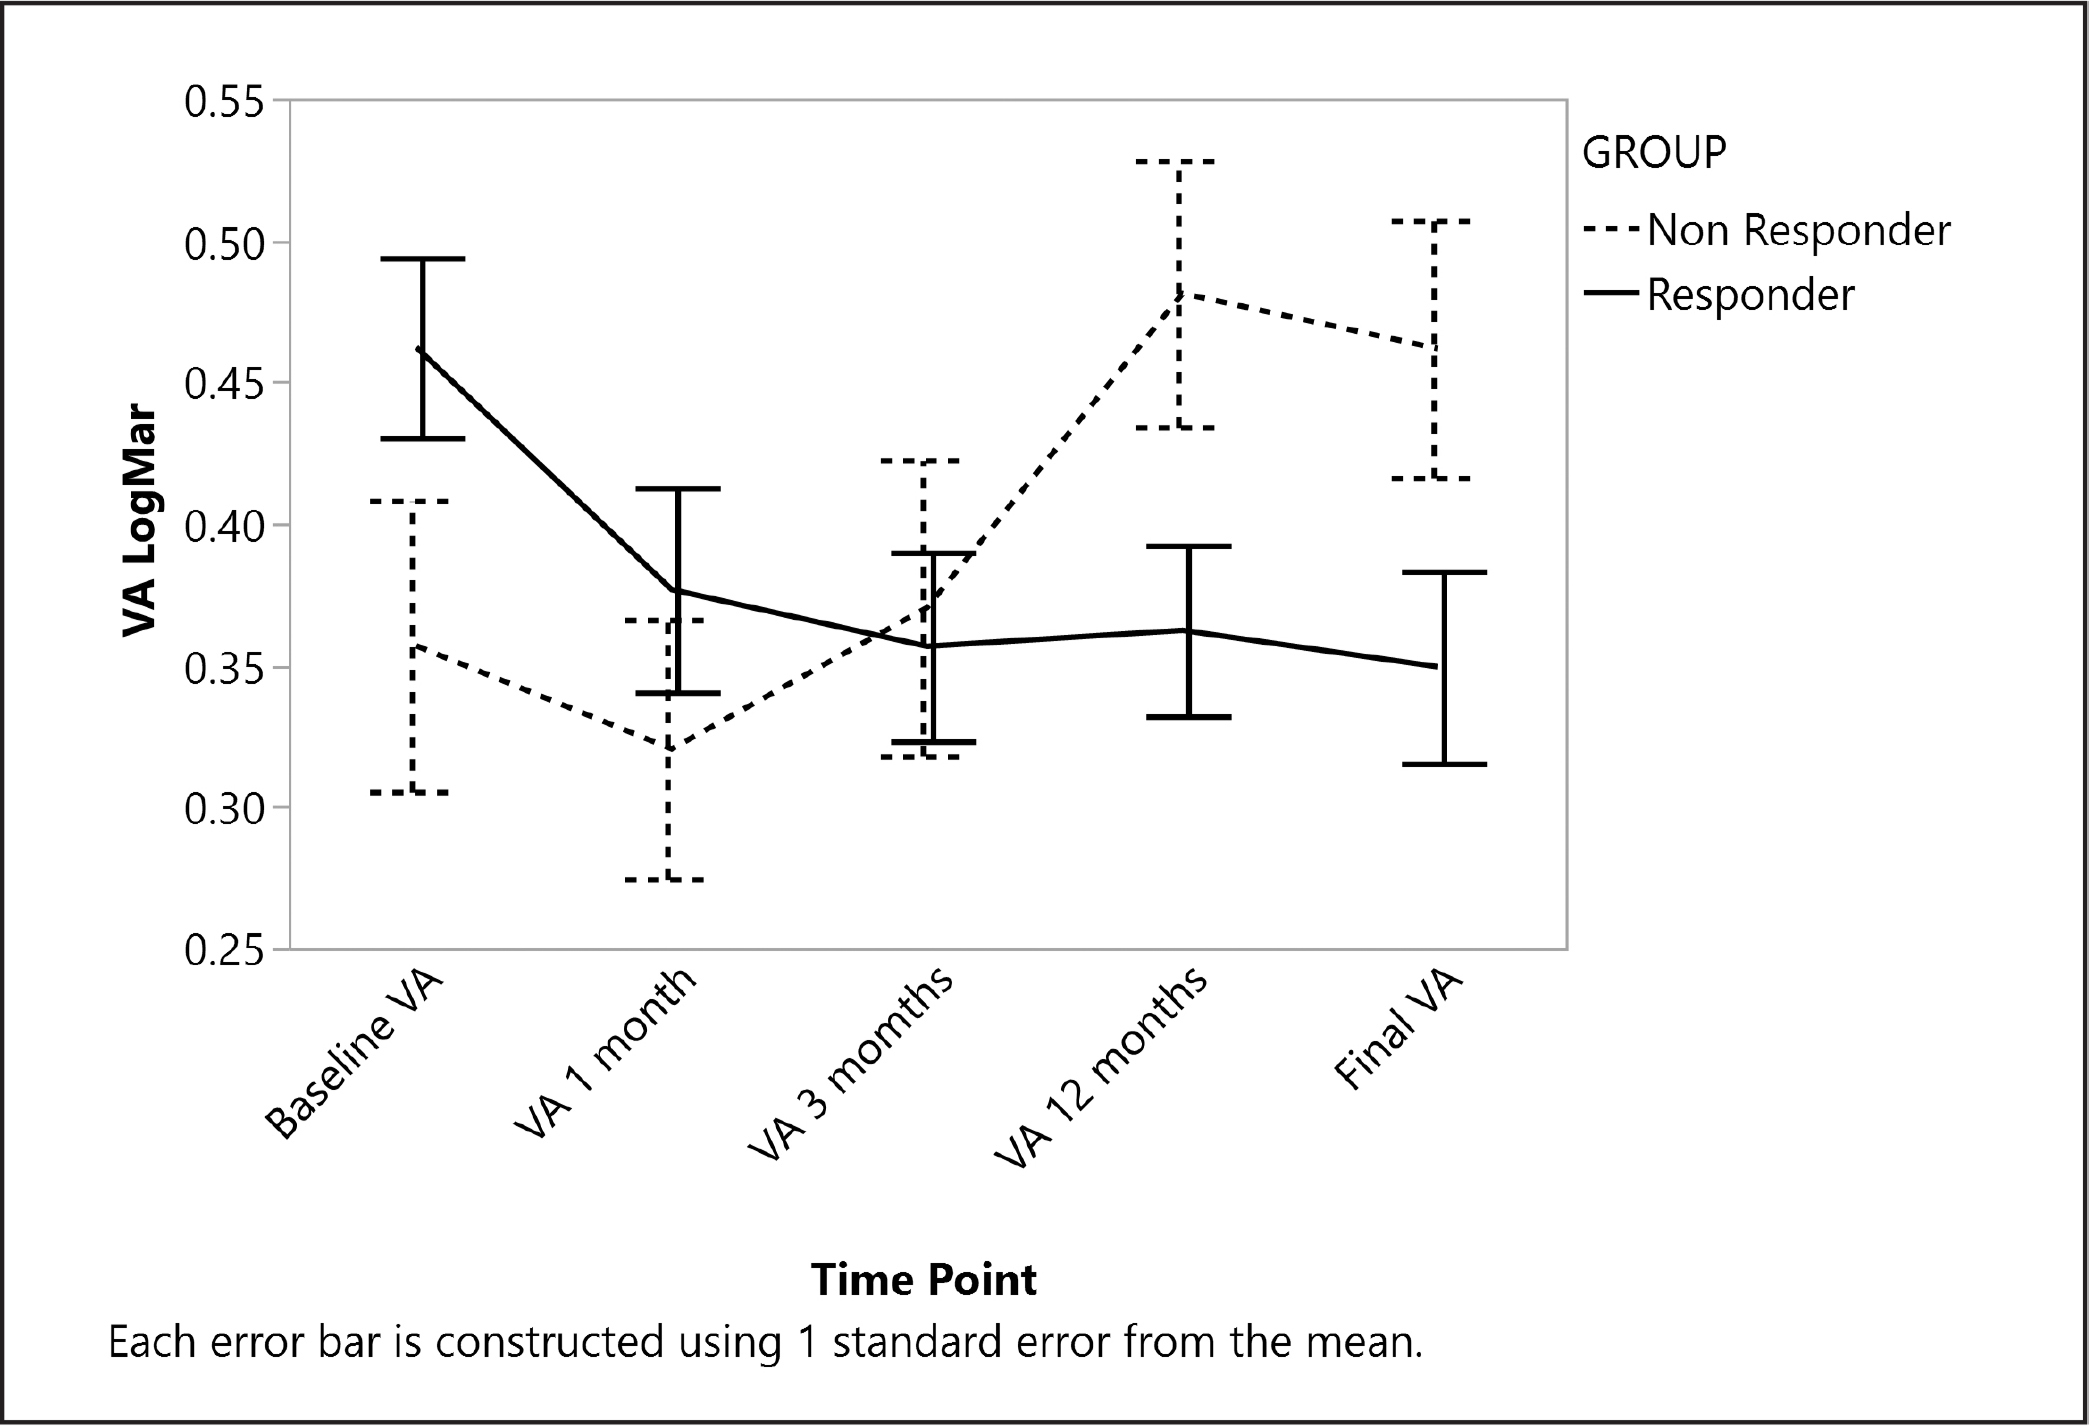 LogMar of visual acuity (VA) versus follow-up time points, stratified by group. Responders had VA improvement over time, corresponding to the LogMar numbers on the Y-axis. In contrast, nonresponders had VA decrease over time.